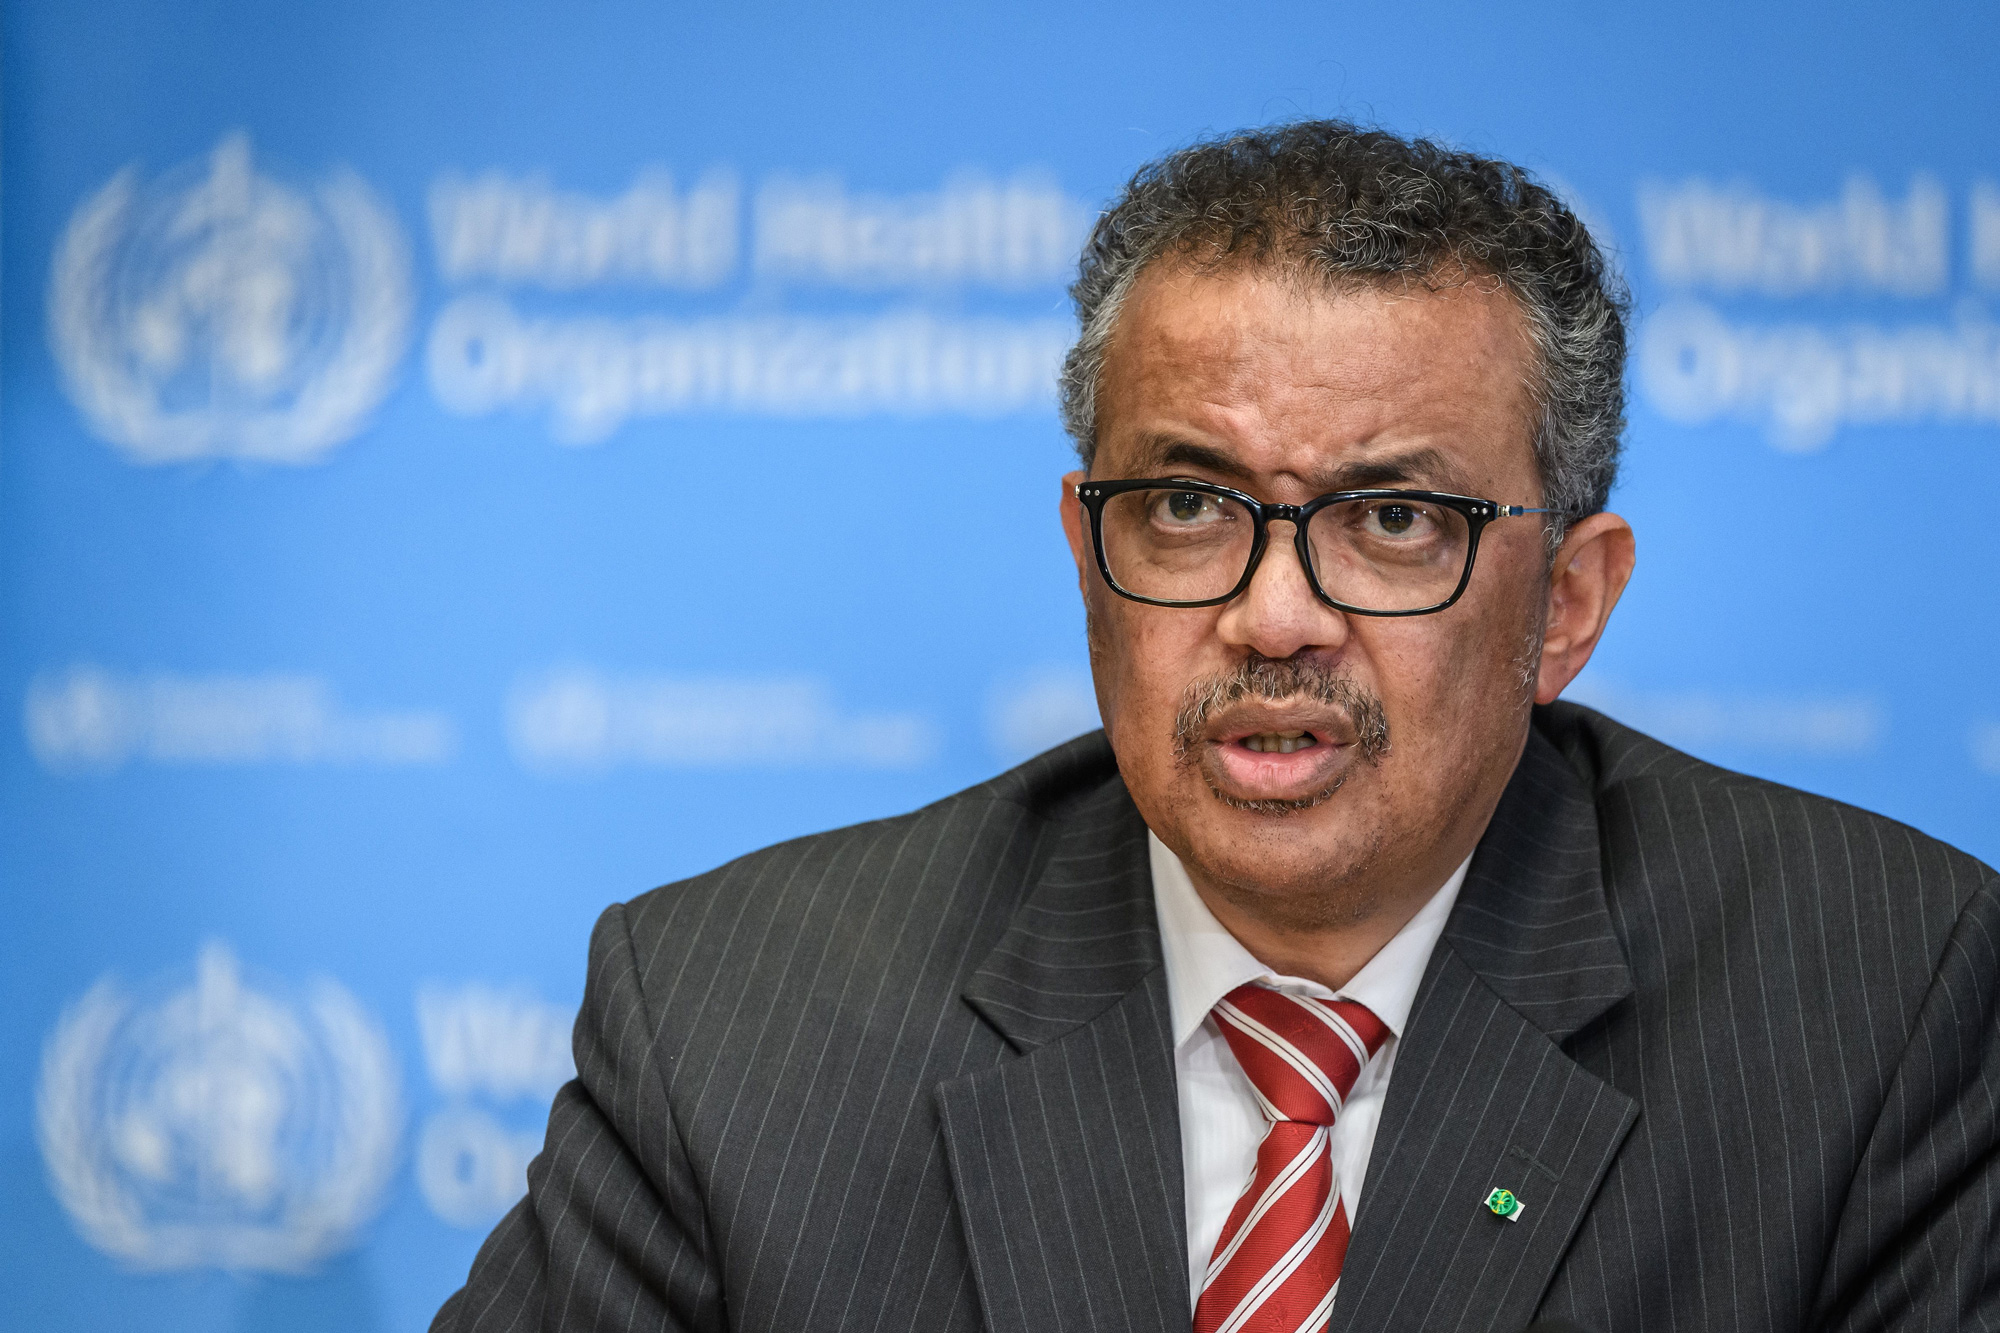 Director-General of the World Health Organization Tedros Adhanom Ghebreyesus attends a daily press briefing on COVID-19 virus at the WHO headquaters on March 11, 2020, in Geneva.